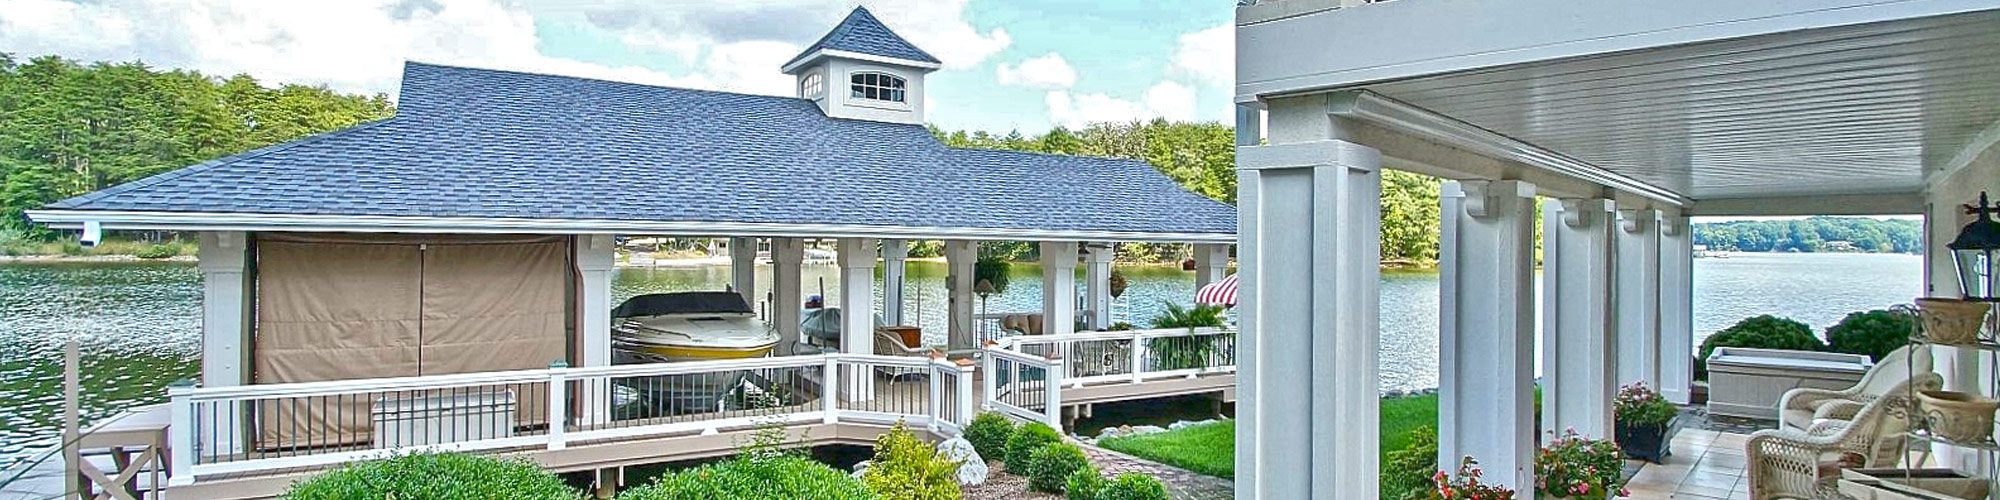 boat-dock-on-lakefront-property